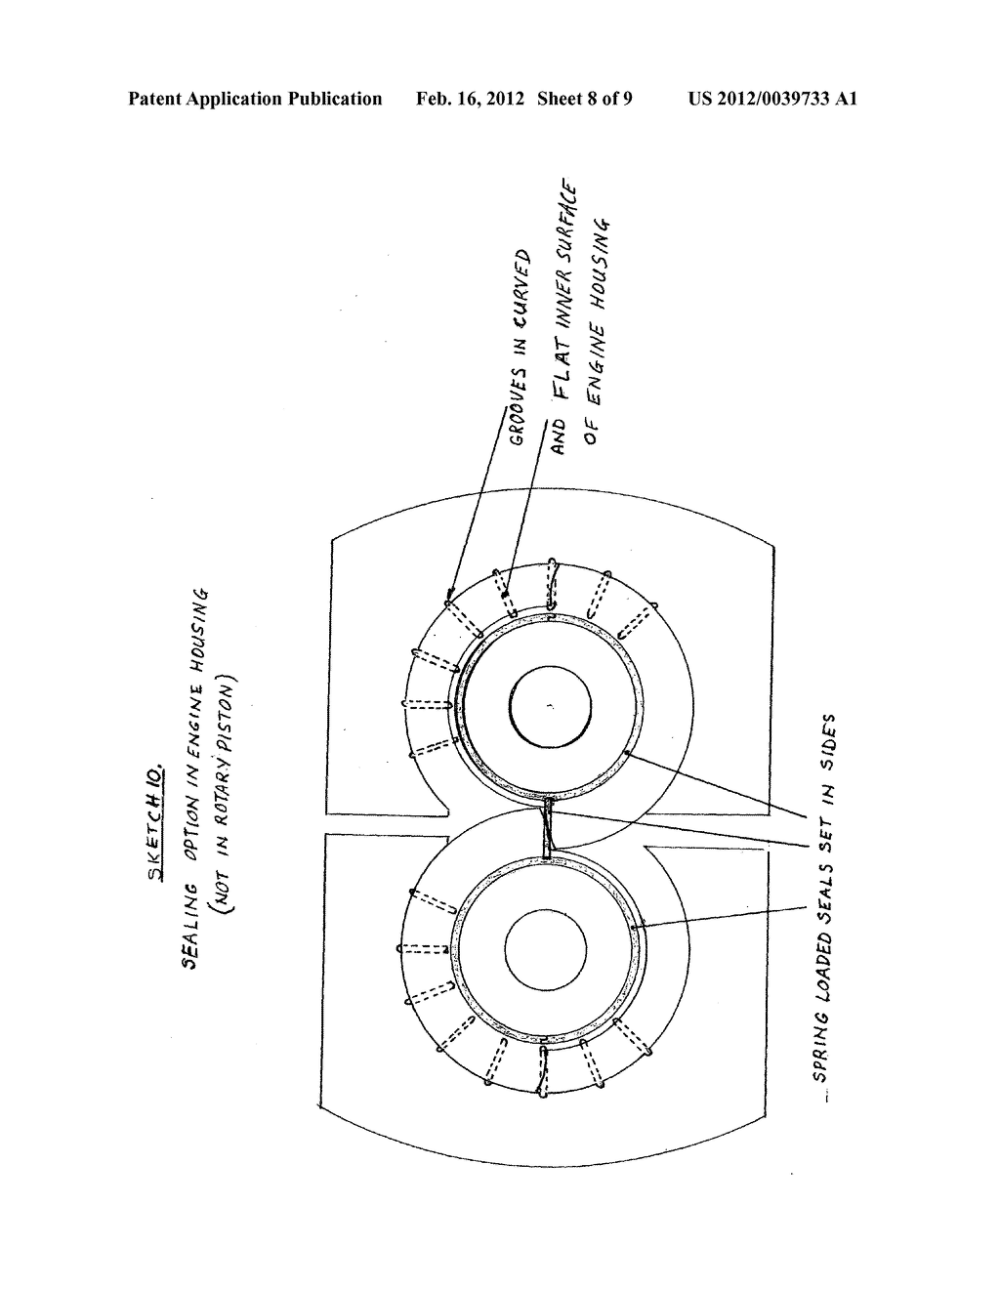 medium resolution of rotary piston steam engine with balanced rotary variable inlet cut off valve and secondary expansion without back pressure on primary expansion diagram